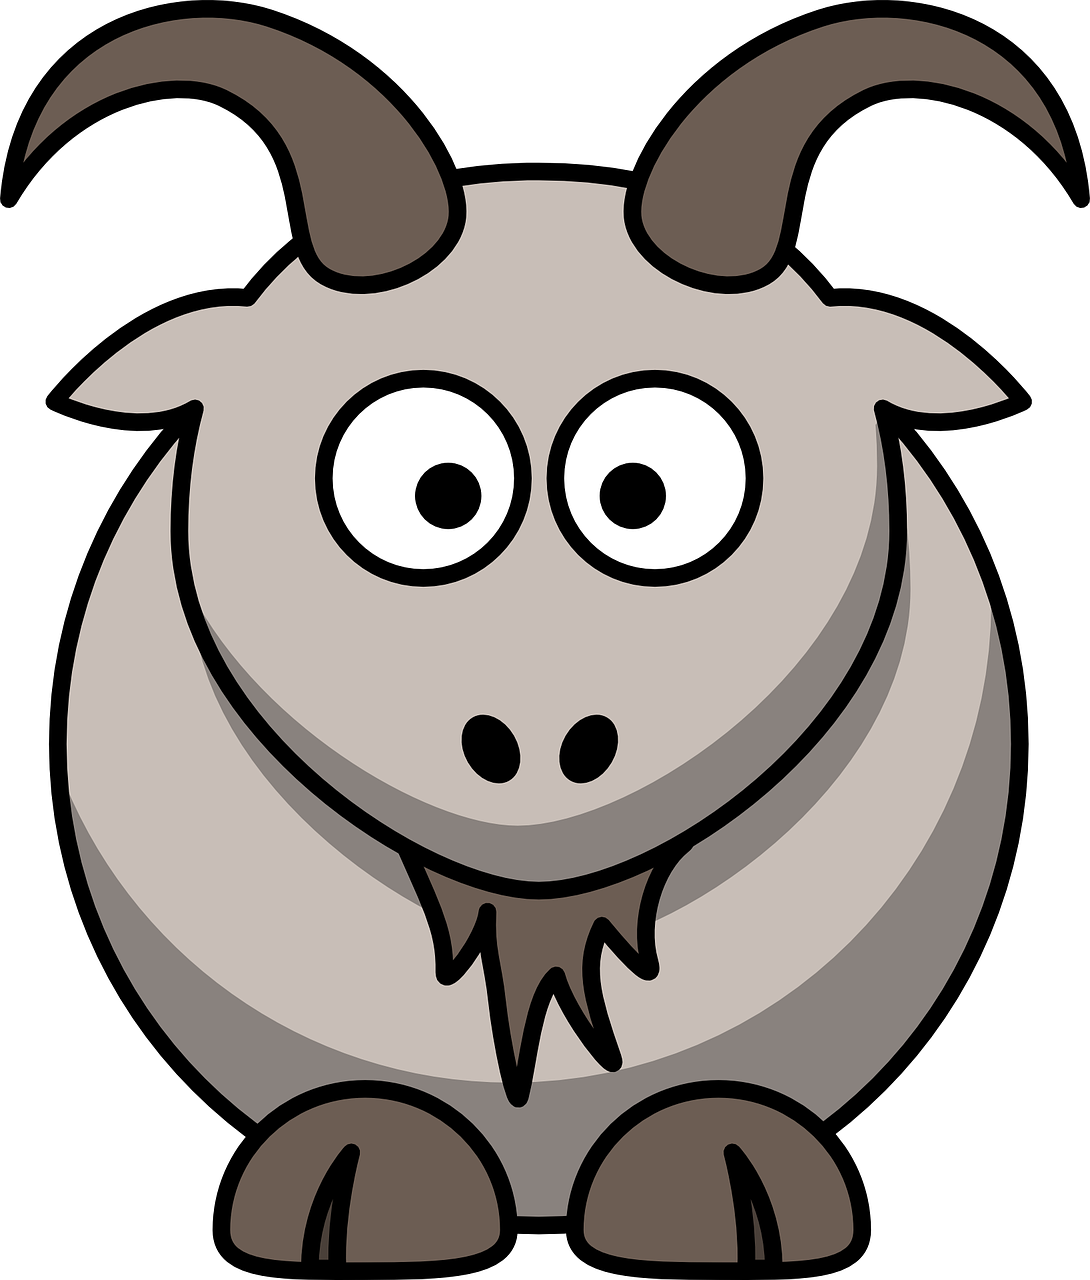 Baby goat face clipart picture royalty free download Free Image on Pixabay - Animal, Goat, Face, Head, Hooves   Words ... picture royalty free download